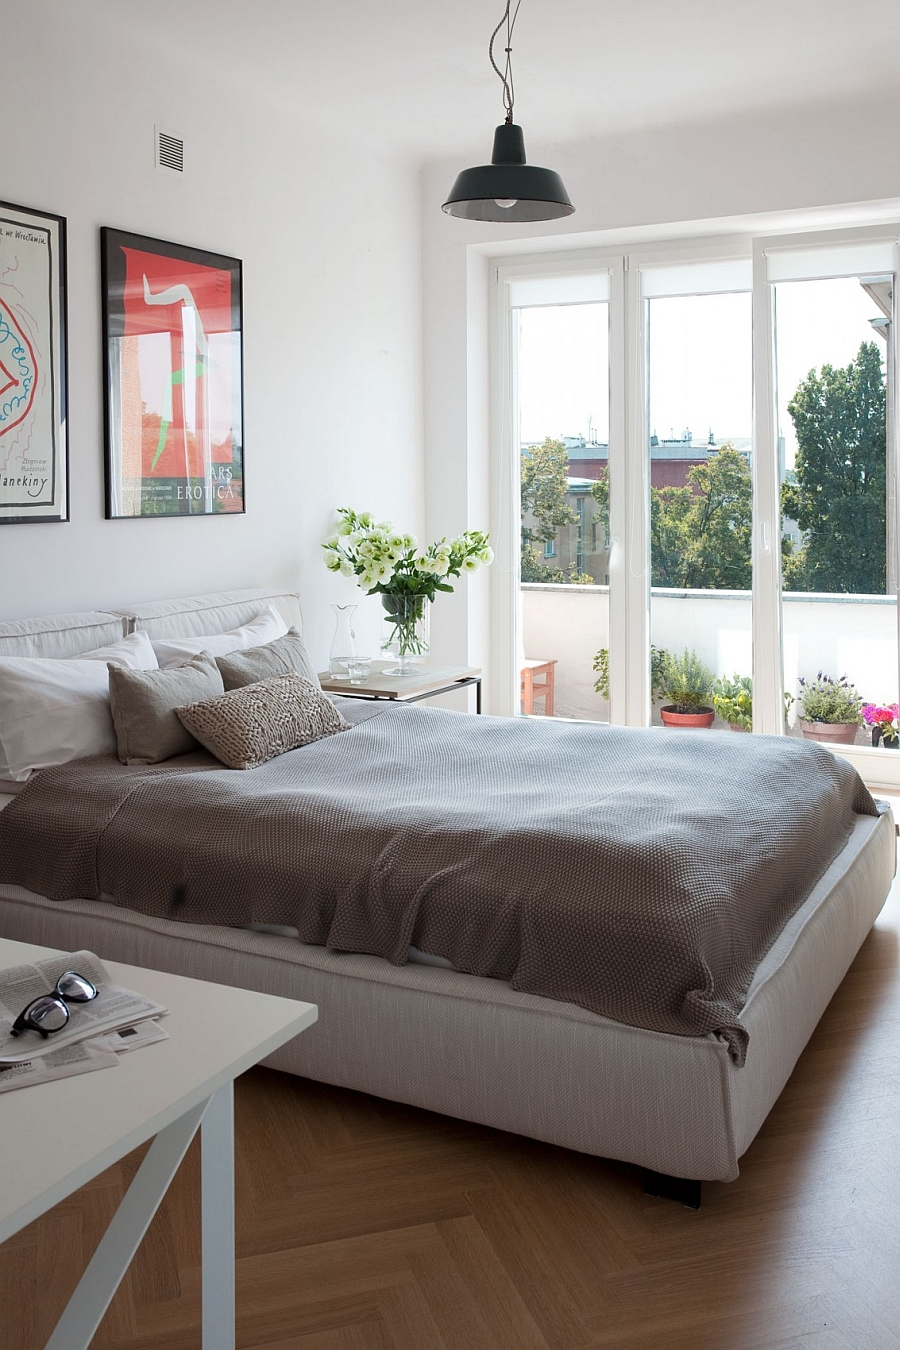 Lovely bedroom in white connecetd with the small Balcony outside